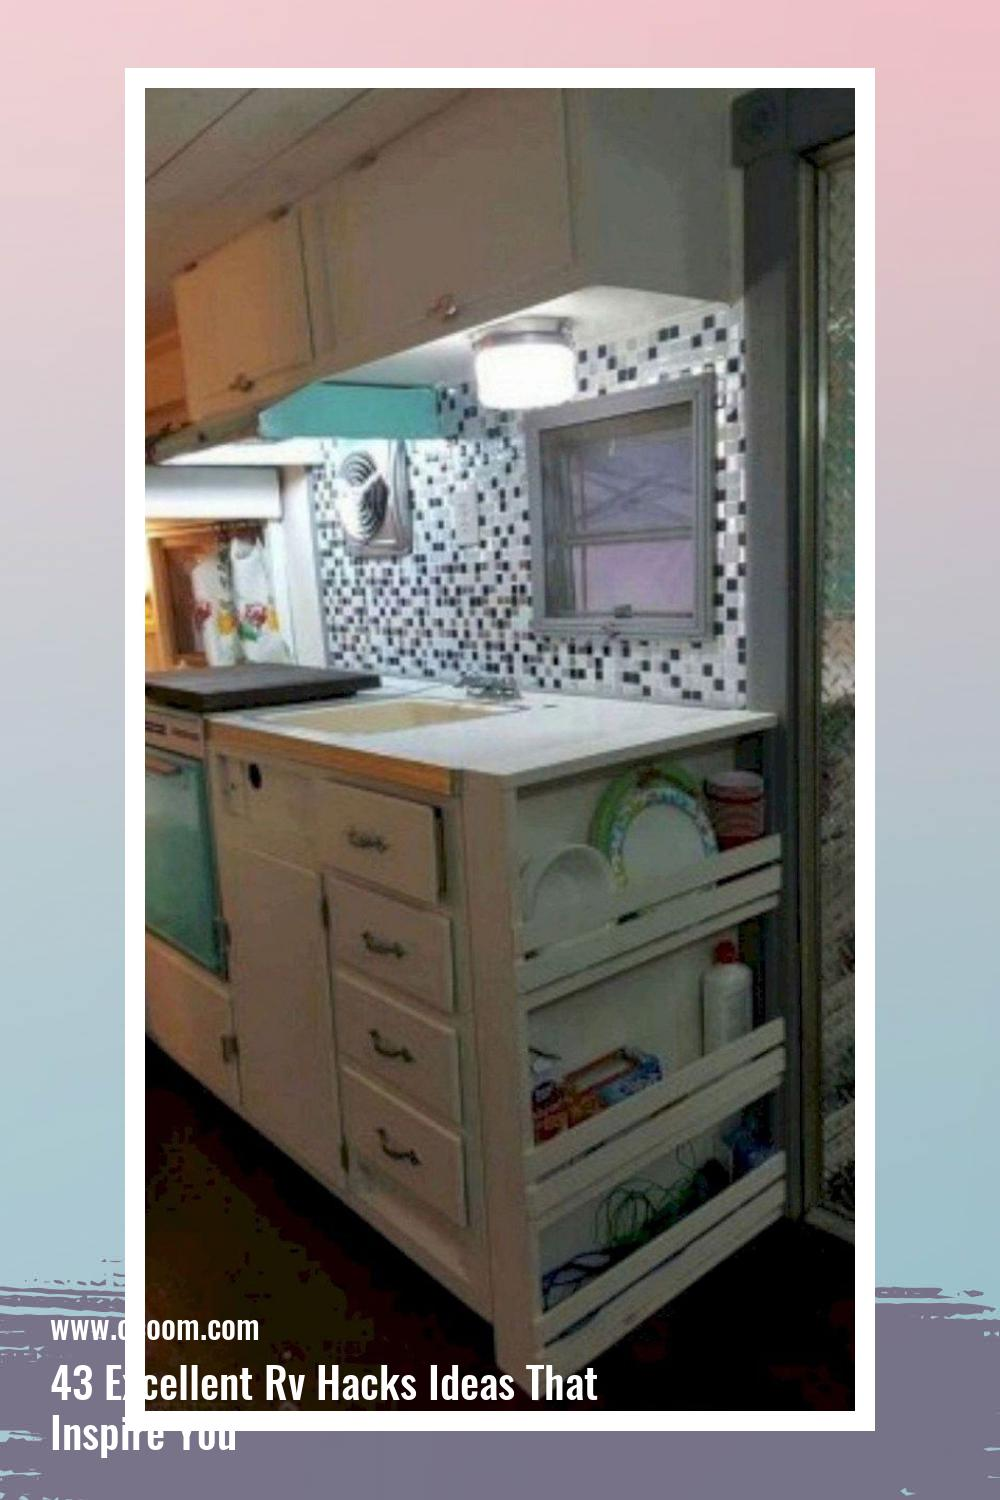 43 Excellent Rv Hacks Ideas That Inspire You 12